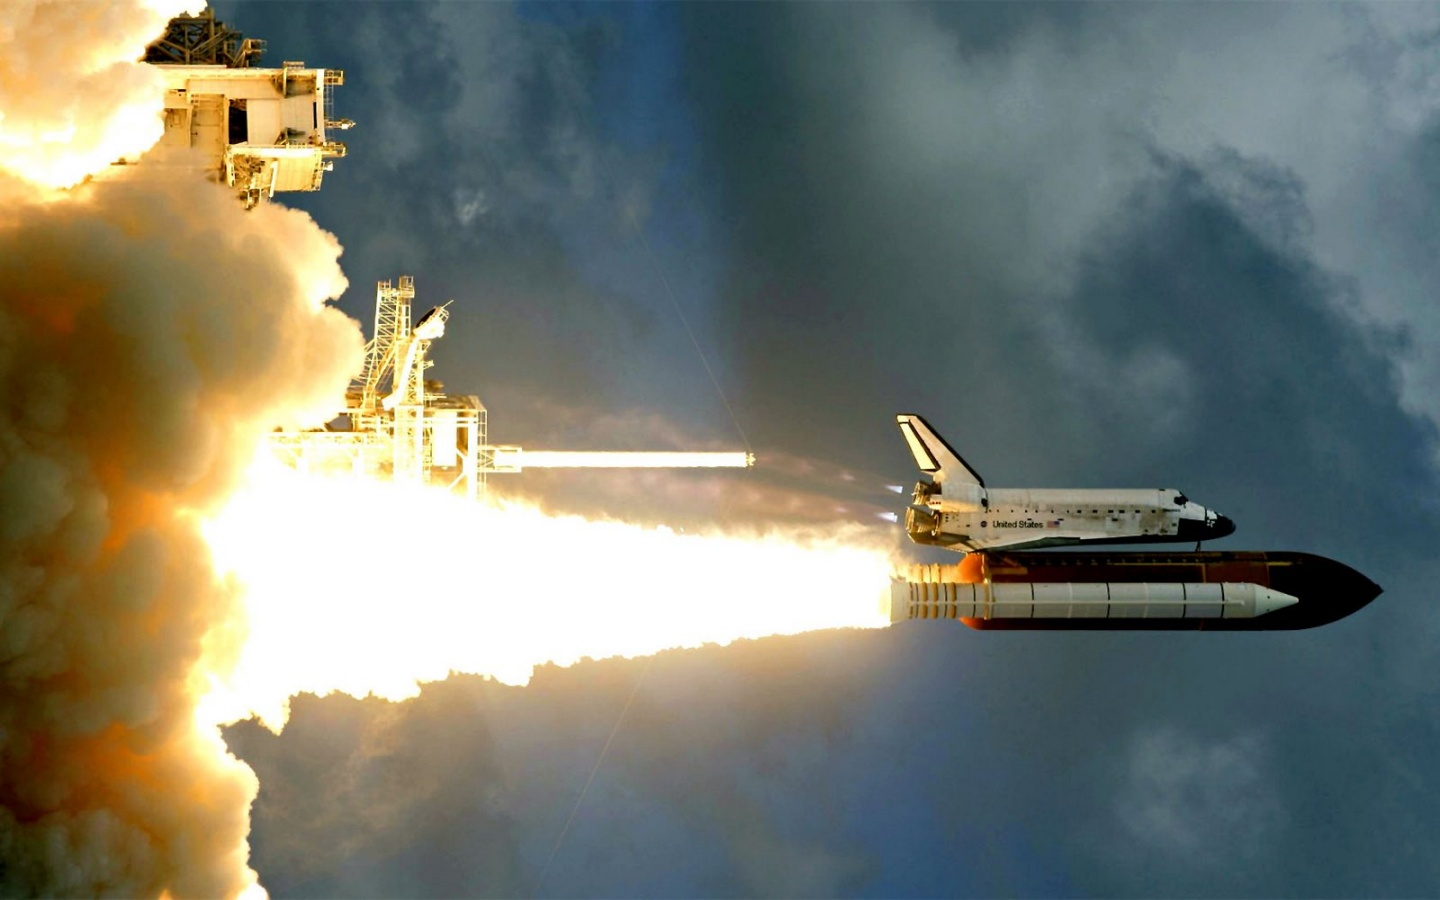 freedom space shuttle - HD 1440×900